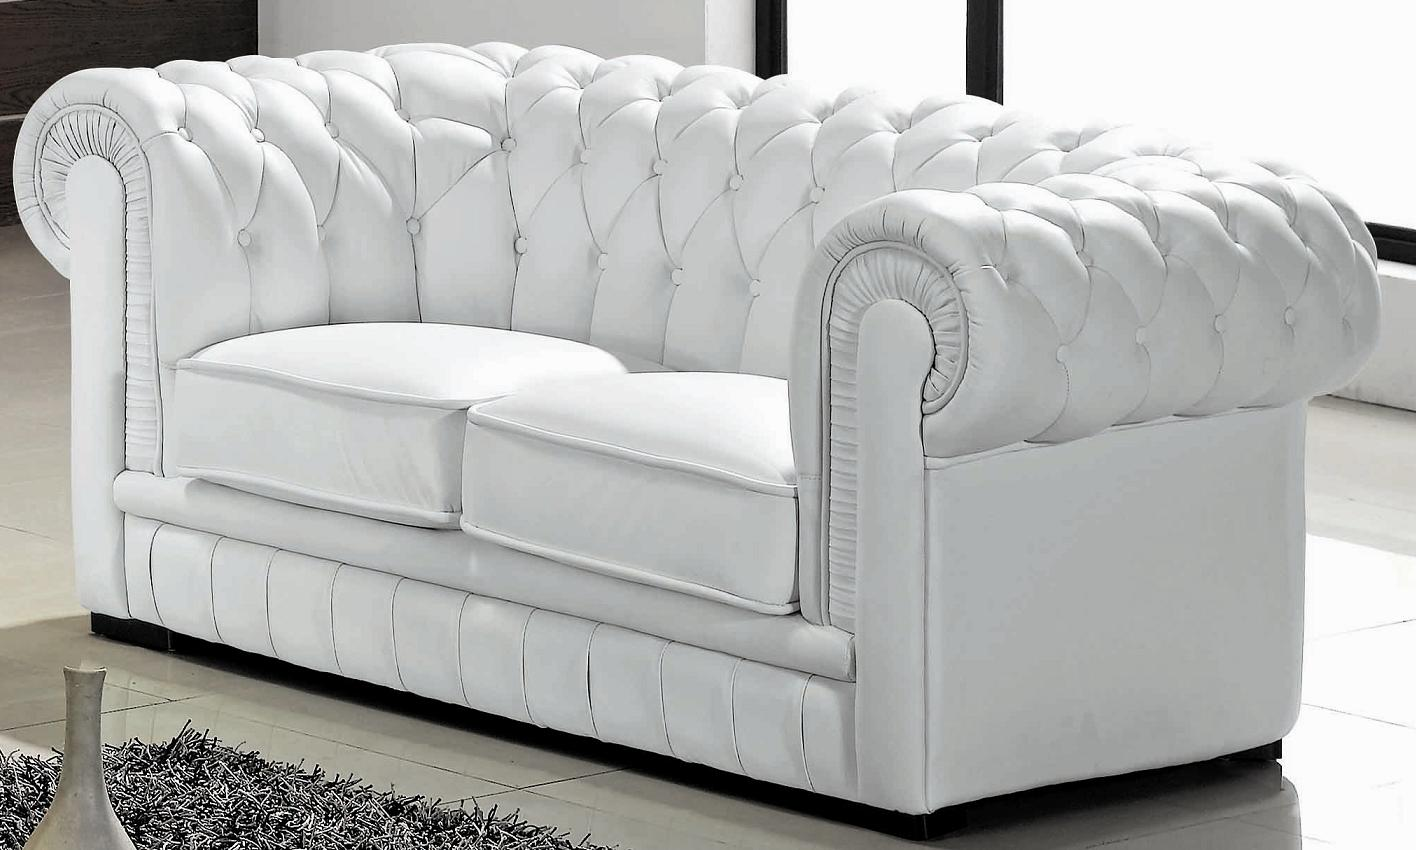 Paris ultra modern white living room furniture black - Modern white living room furniture ...